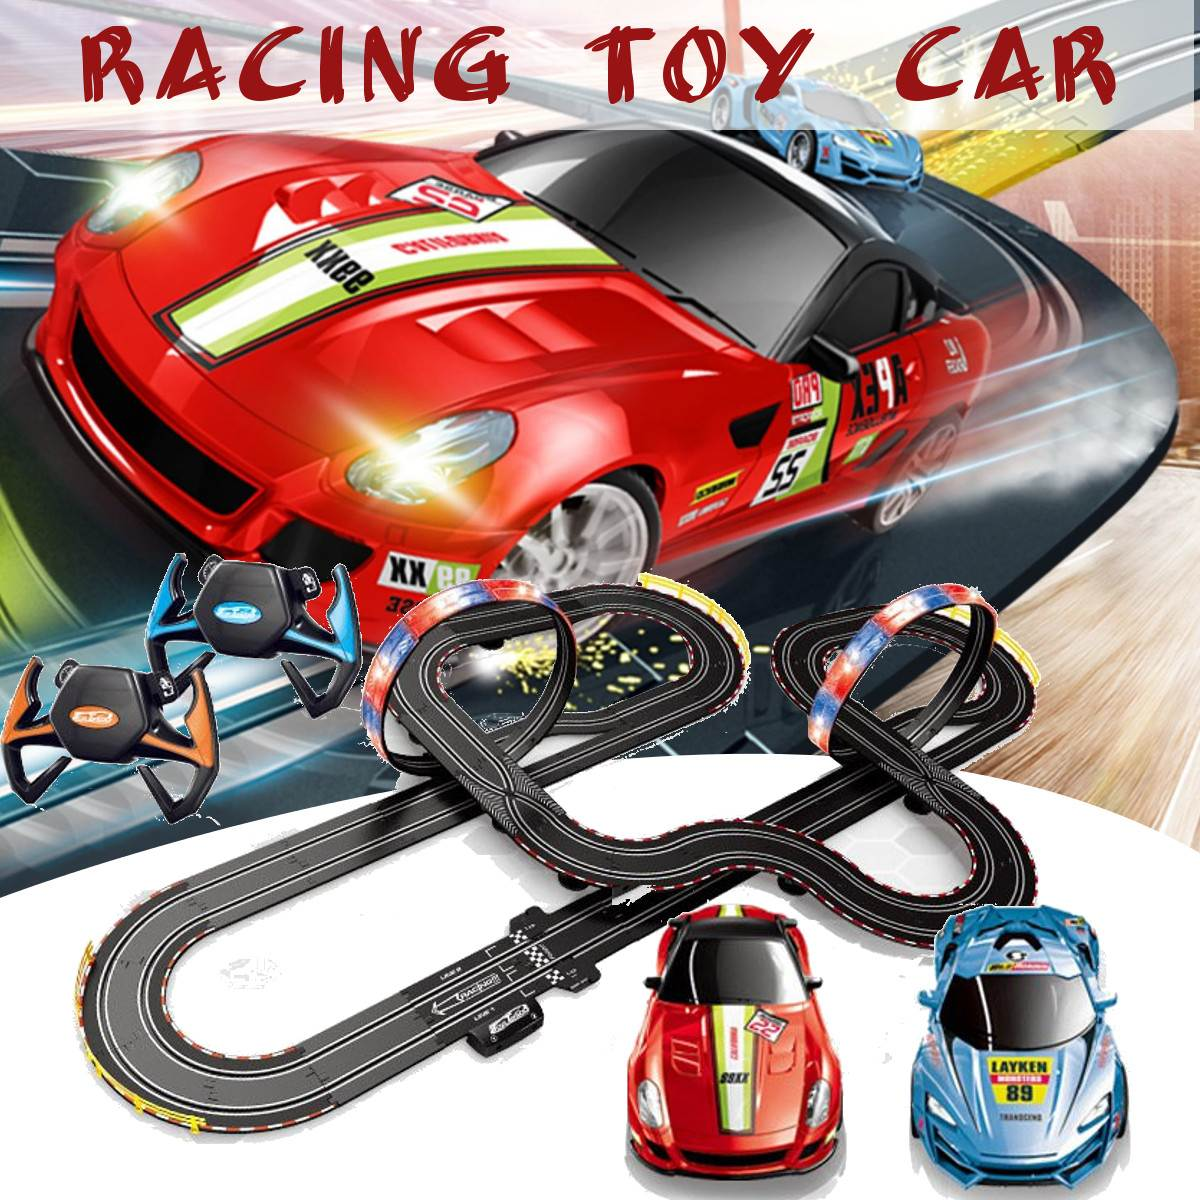 Years Old Children Kids Racing Track Car Toys Gift for Boys,DIY ...